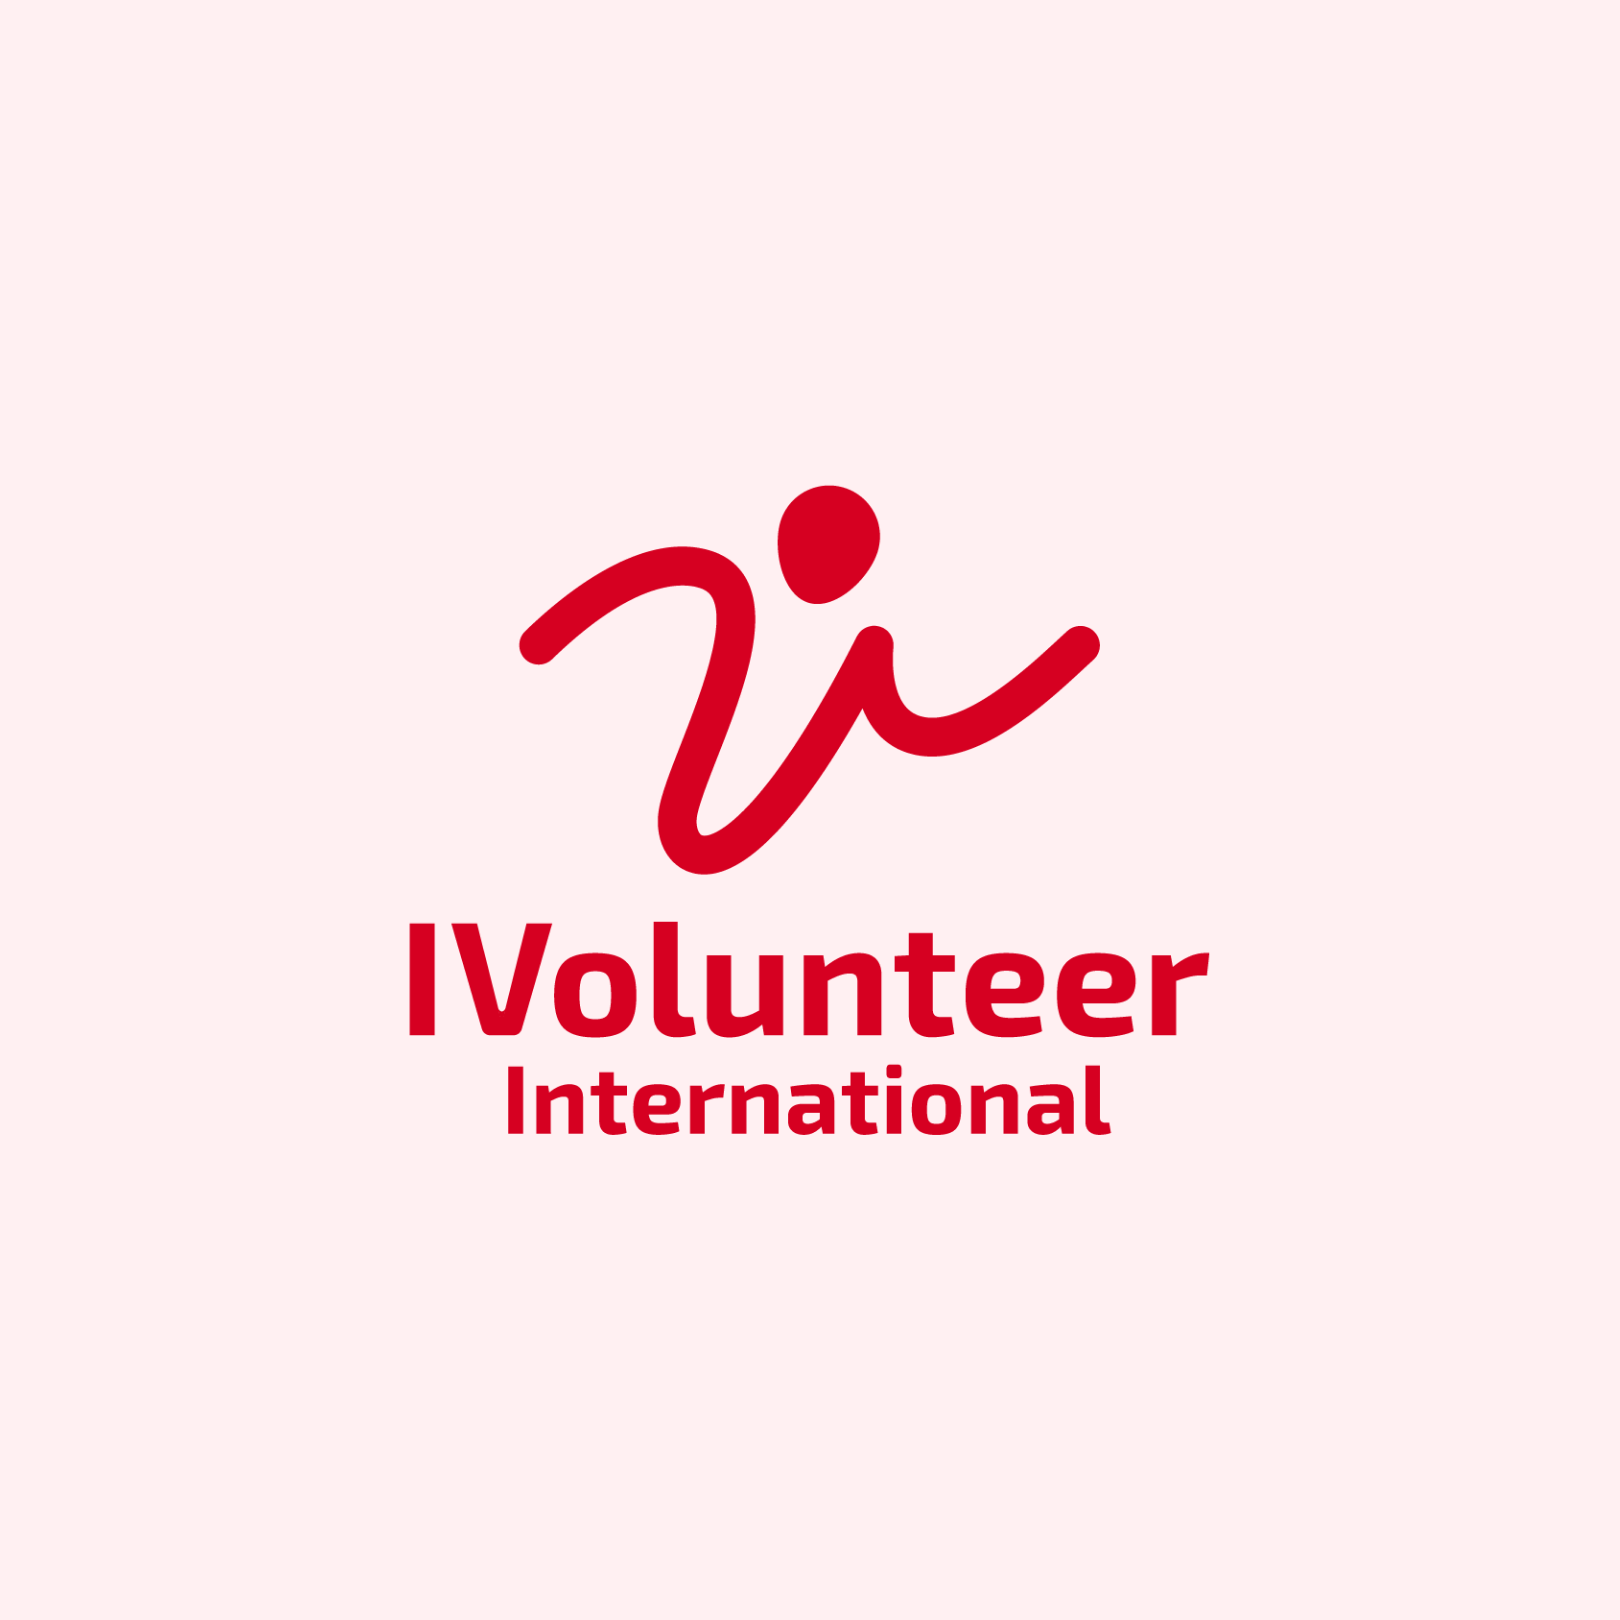 IVolunteer International Logo